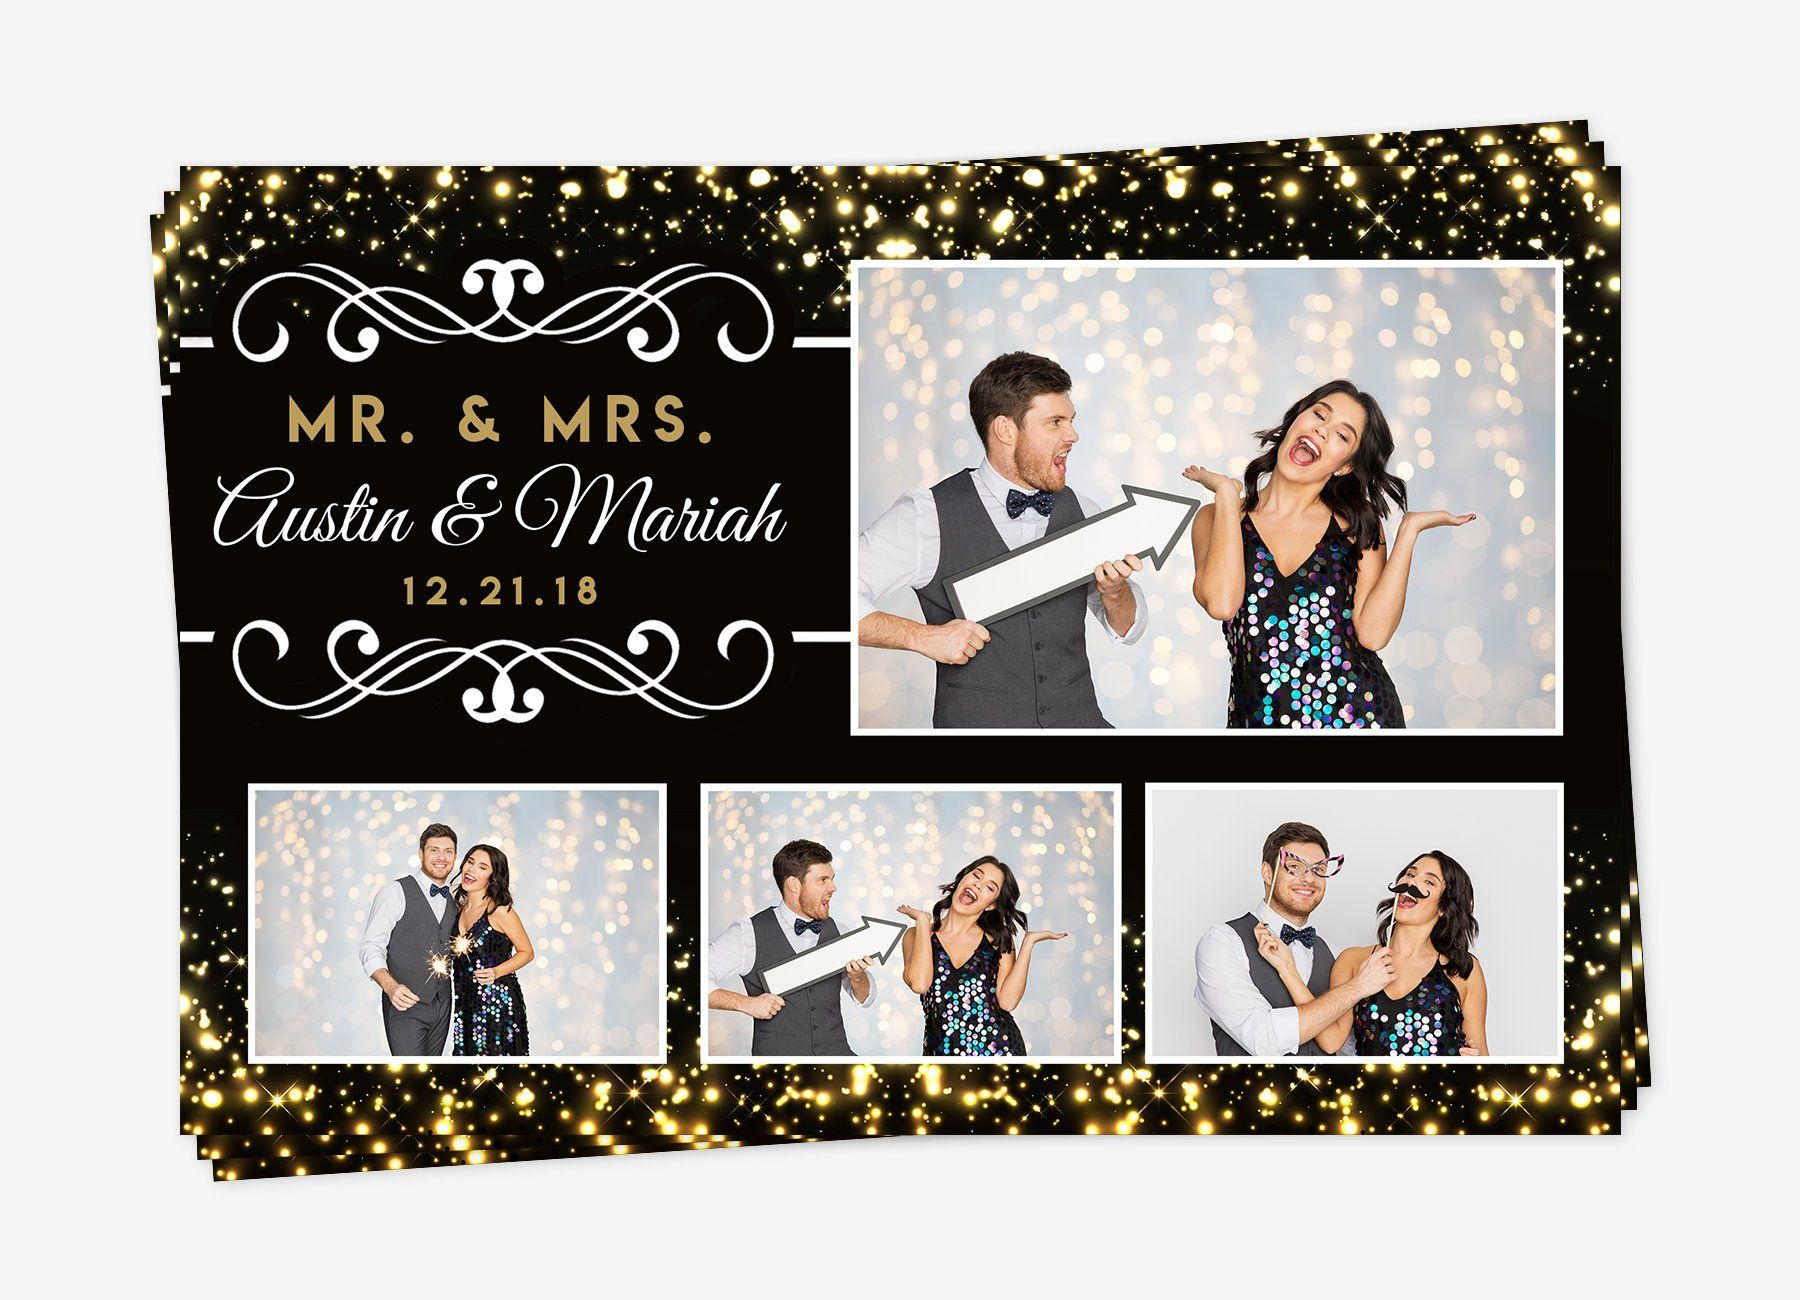 Wedding Photo Booth Template Photo Booth Template Gold Photo Booth Template Wedding Photo Booth Template 4x6 Gold Photo Booth Template Diy Wedding Photo Booth Wedding Photo Booth Photobooth Template